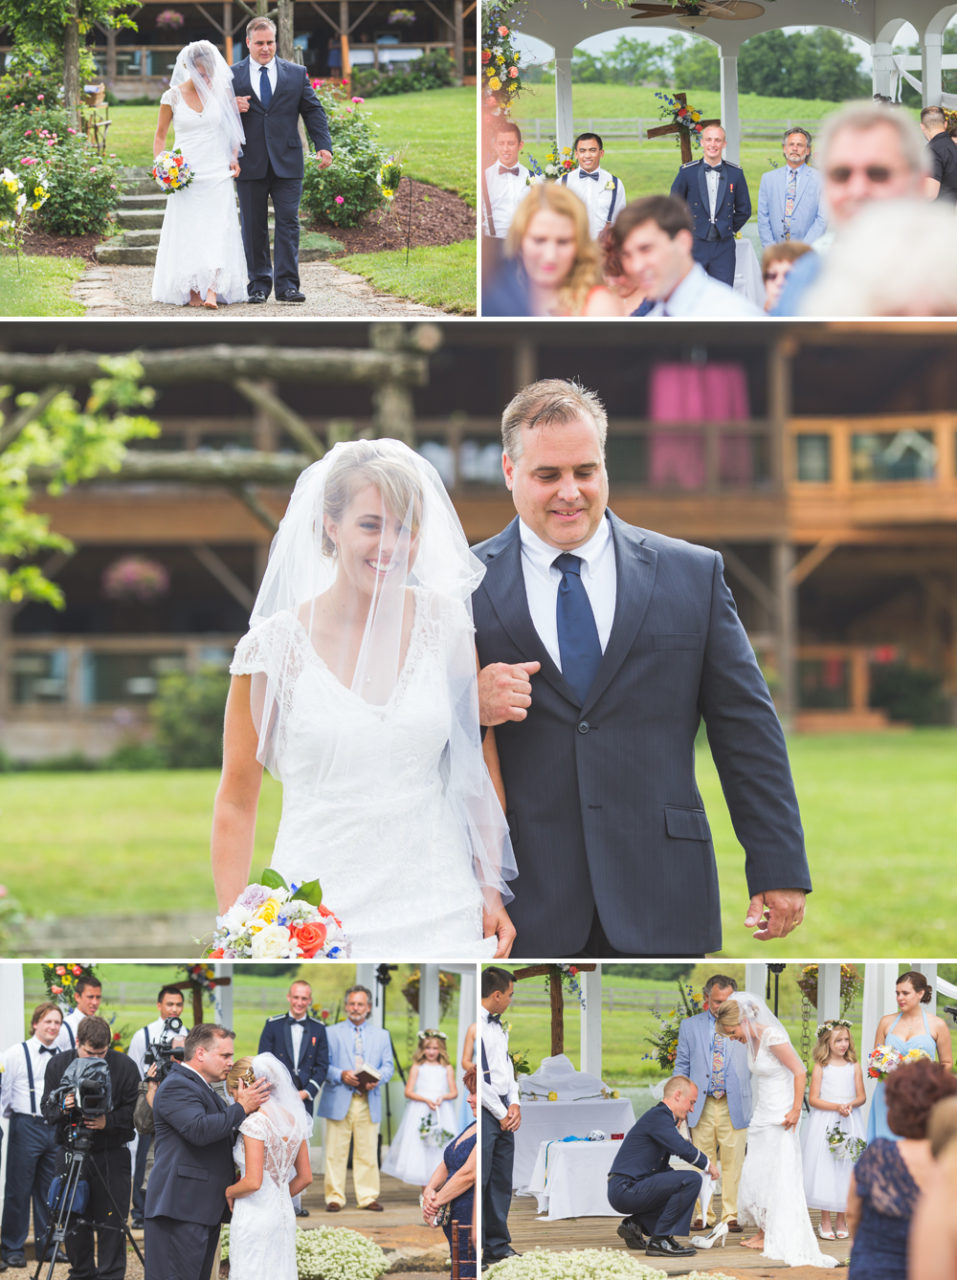 manny-pittsburgh-wedding-photographer-at-lingrow-farm-tlc-four-weddings-wedding-with-a-volcano-07